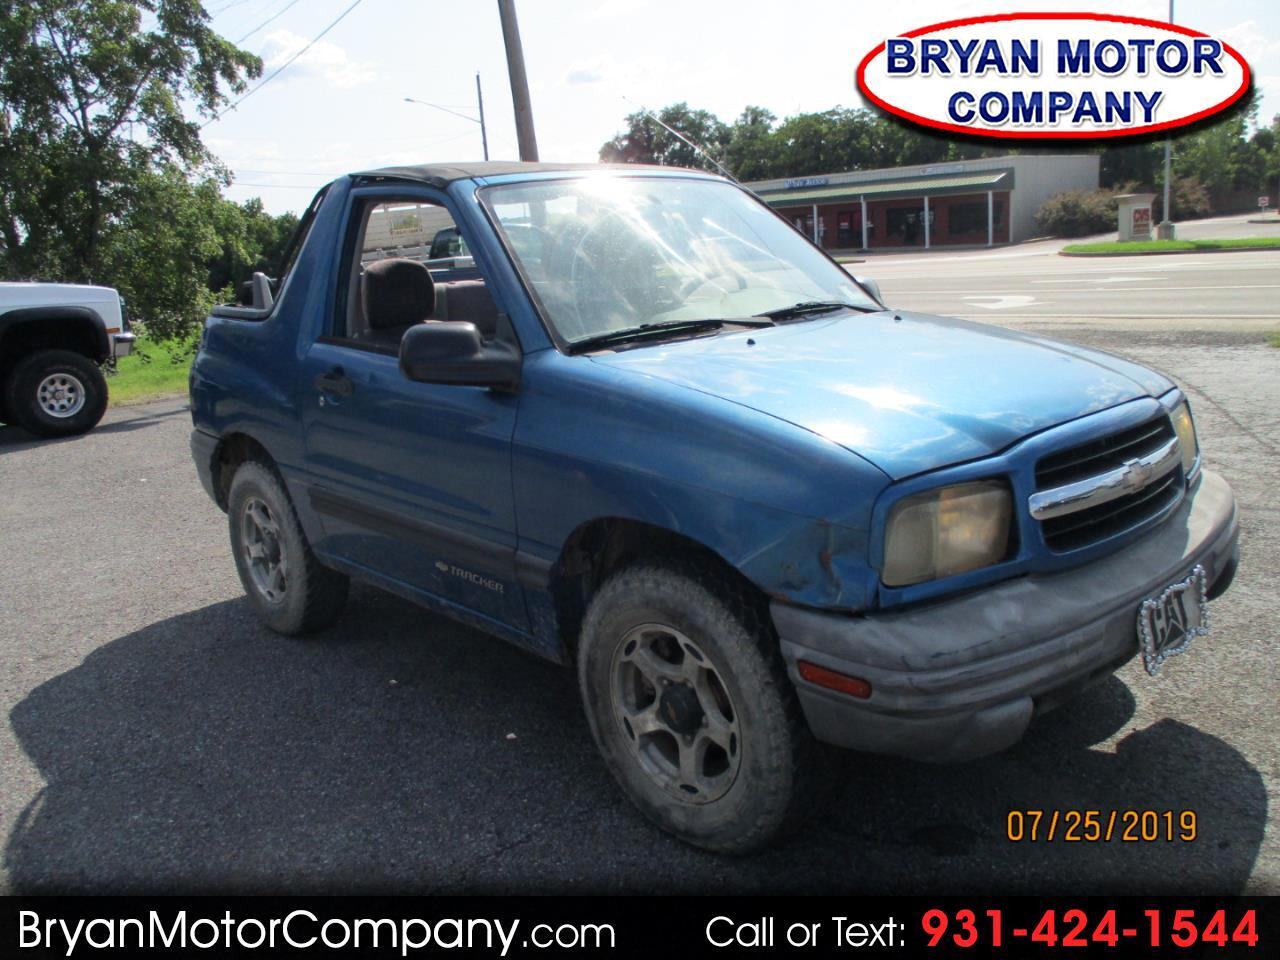 Chevrolet Tracker 2dr Convertible 4WD Base 2001